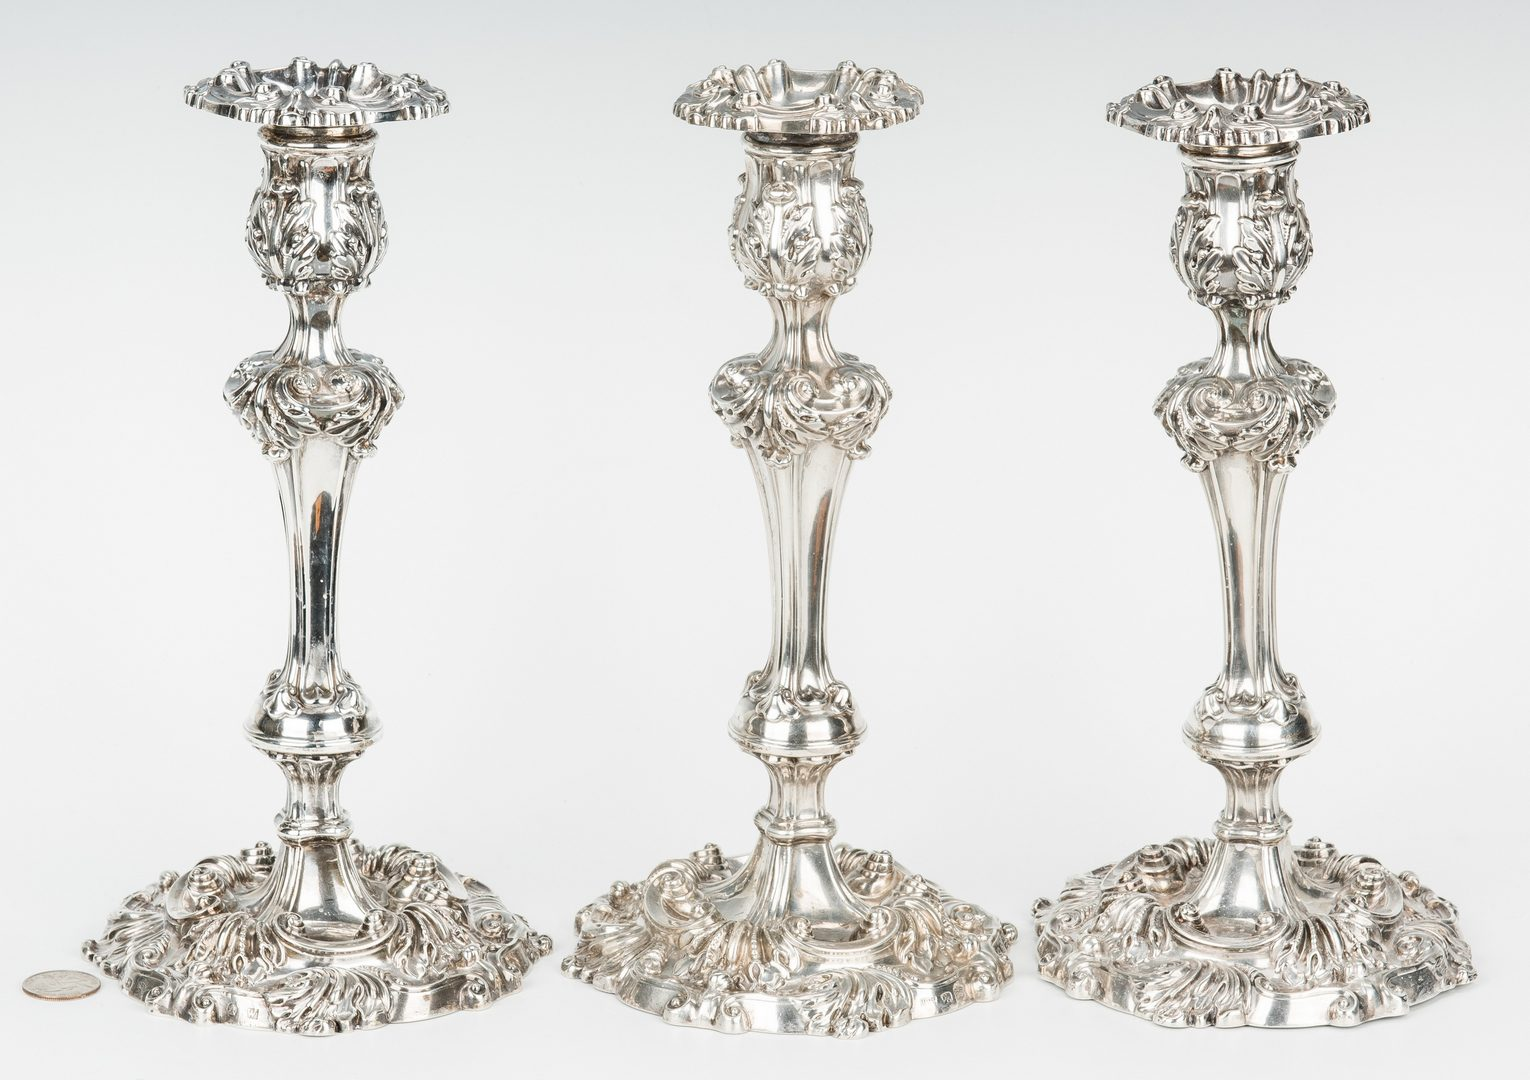 Lot 68: 3 English Sterling Silver Candlesticks